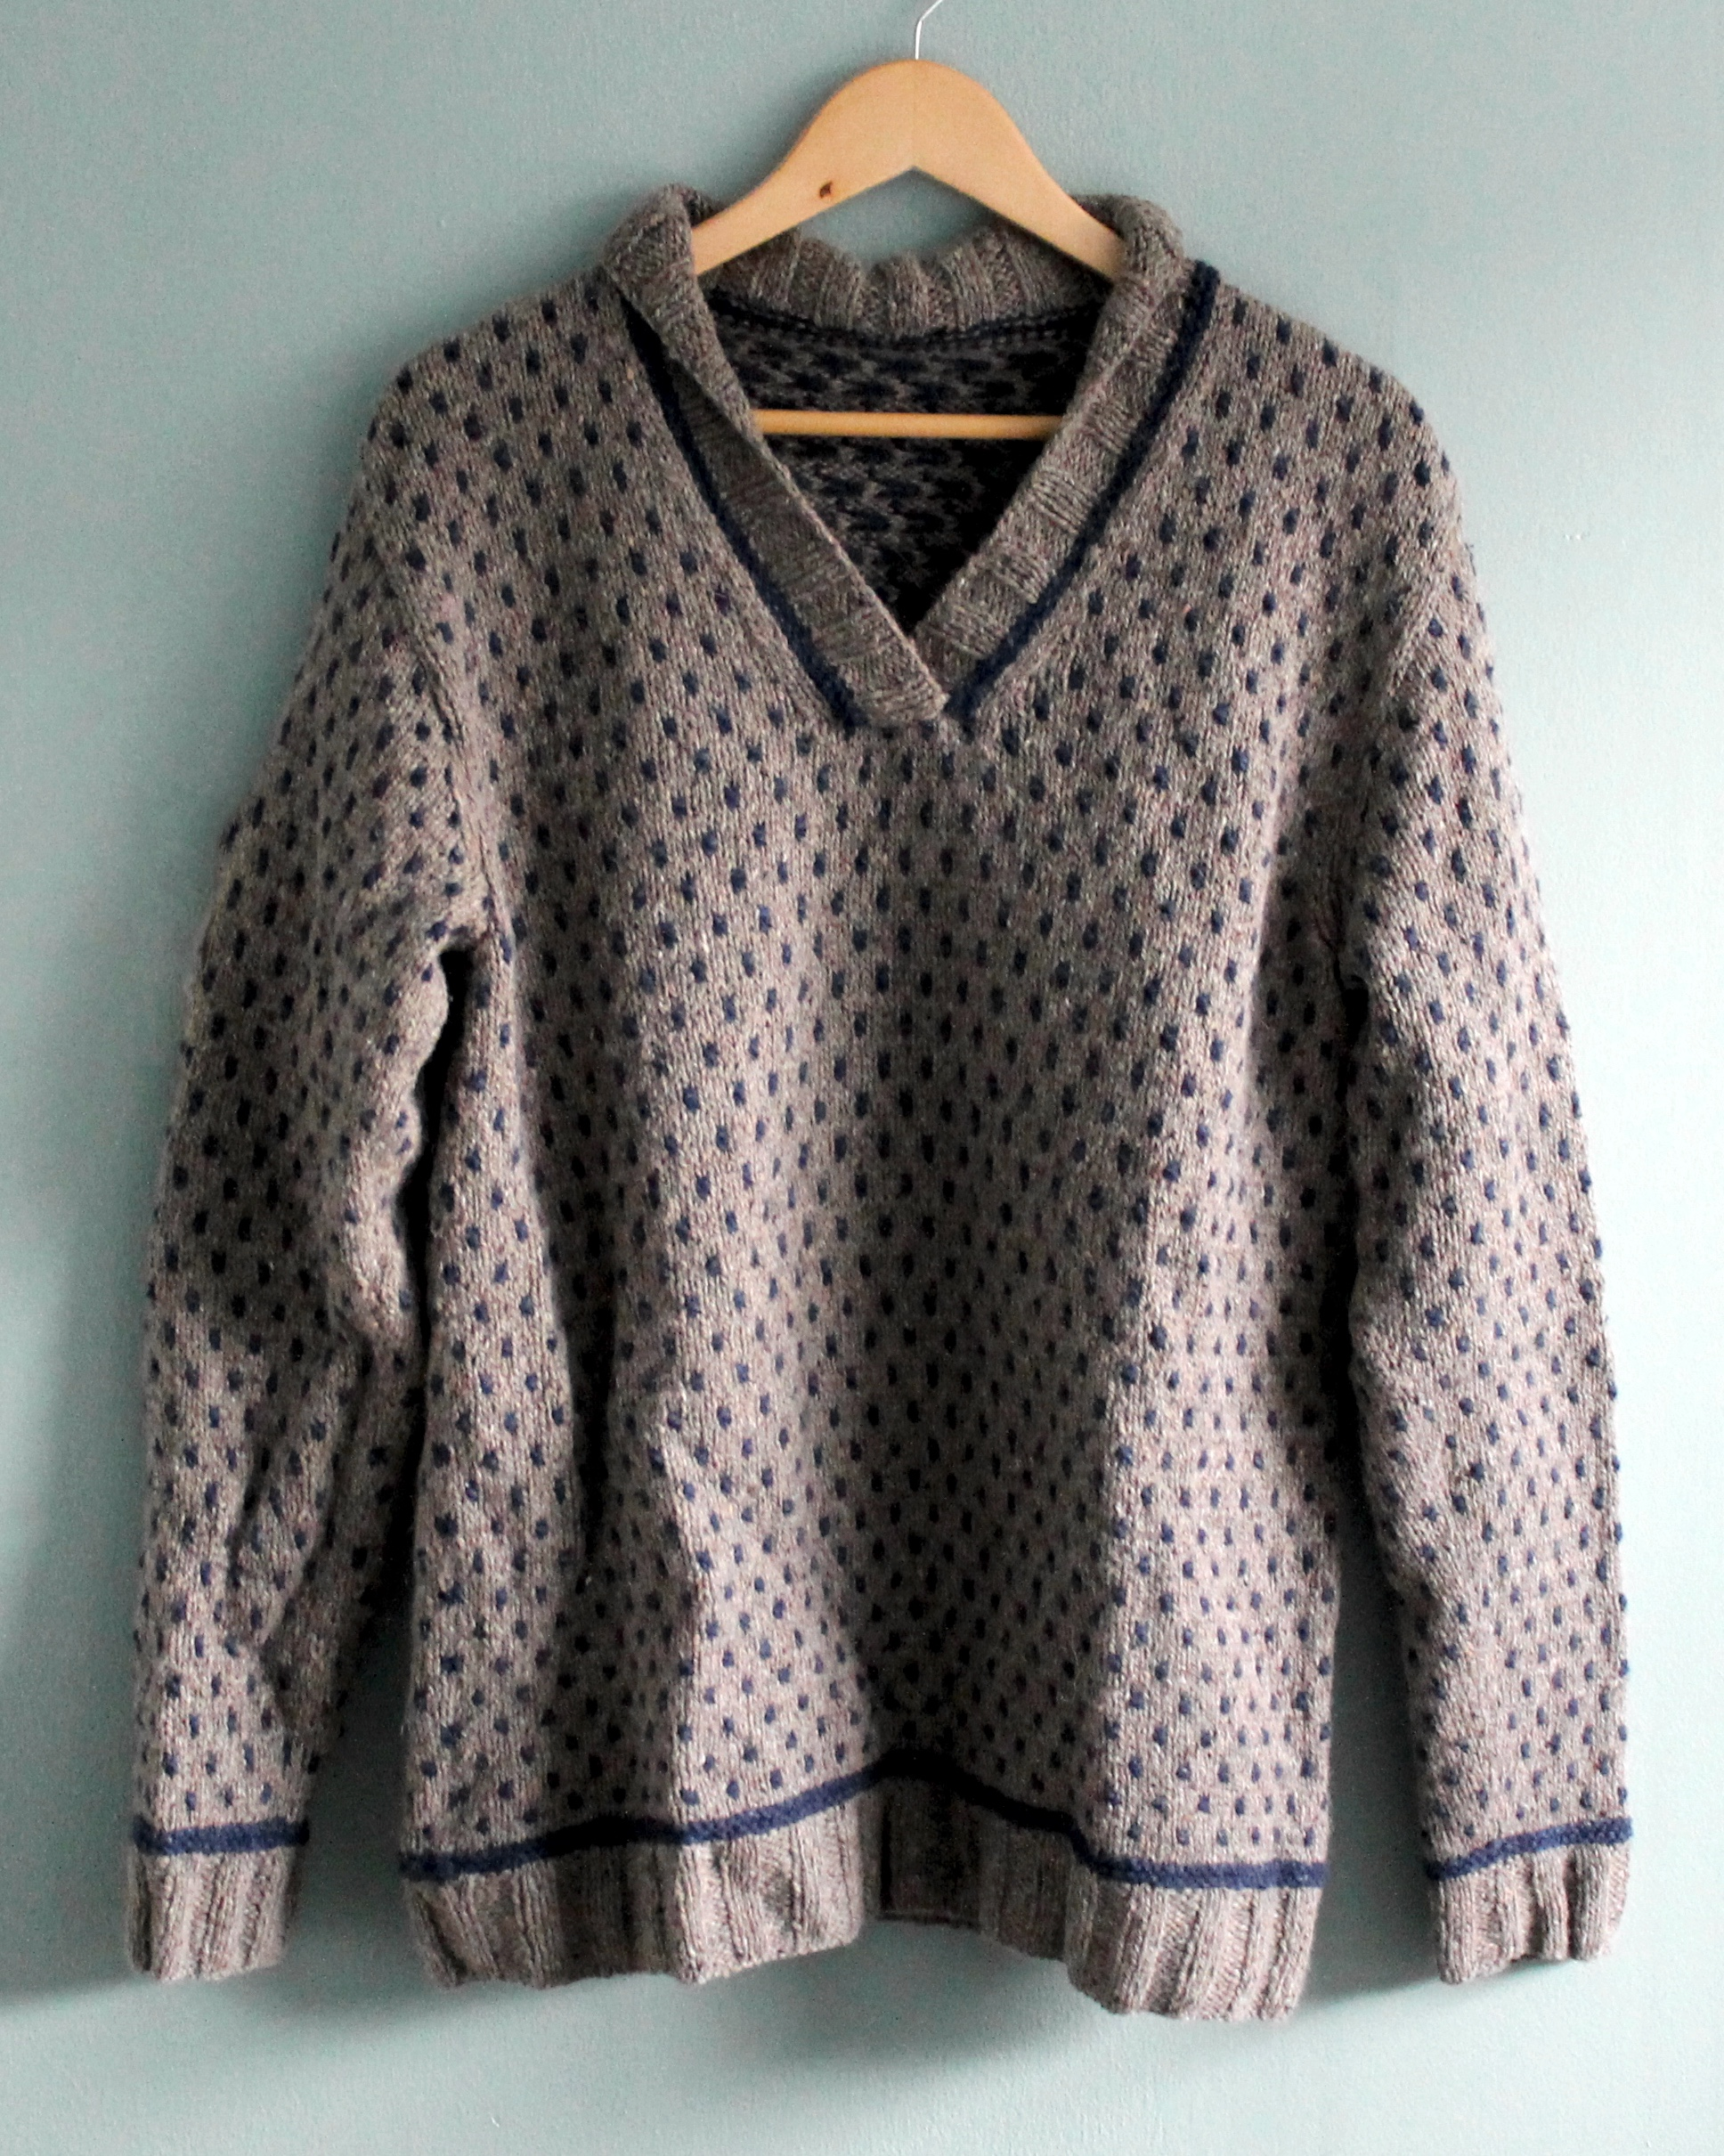 Warwick sweater in light brown and navy tweed Berroco yarn